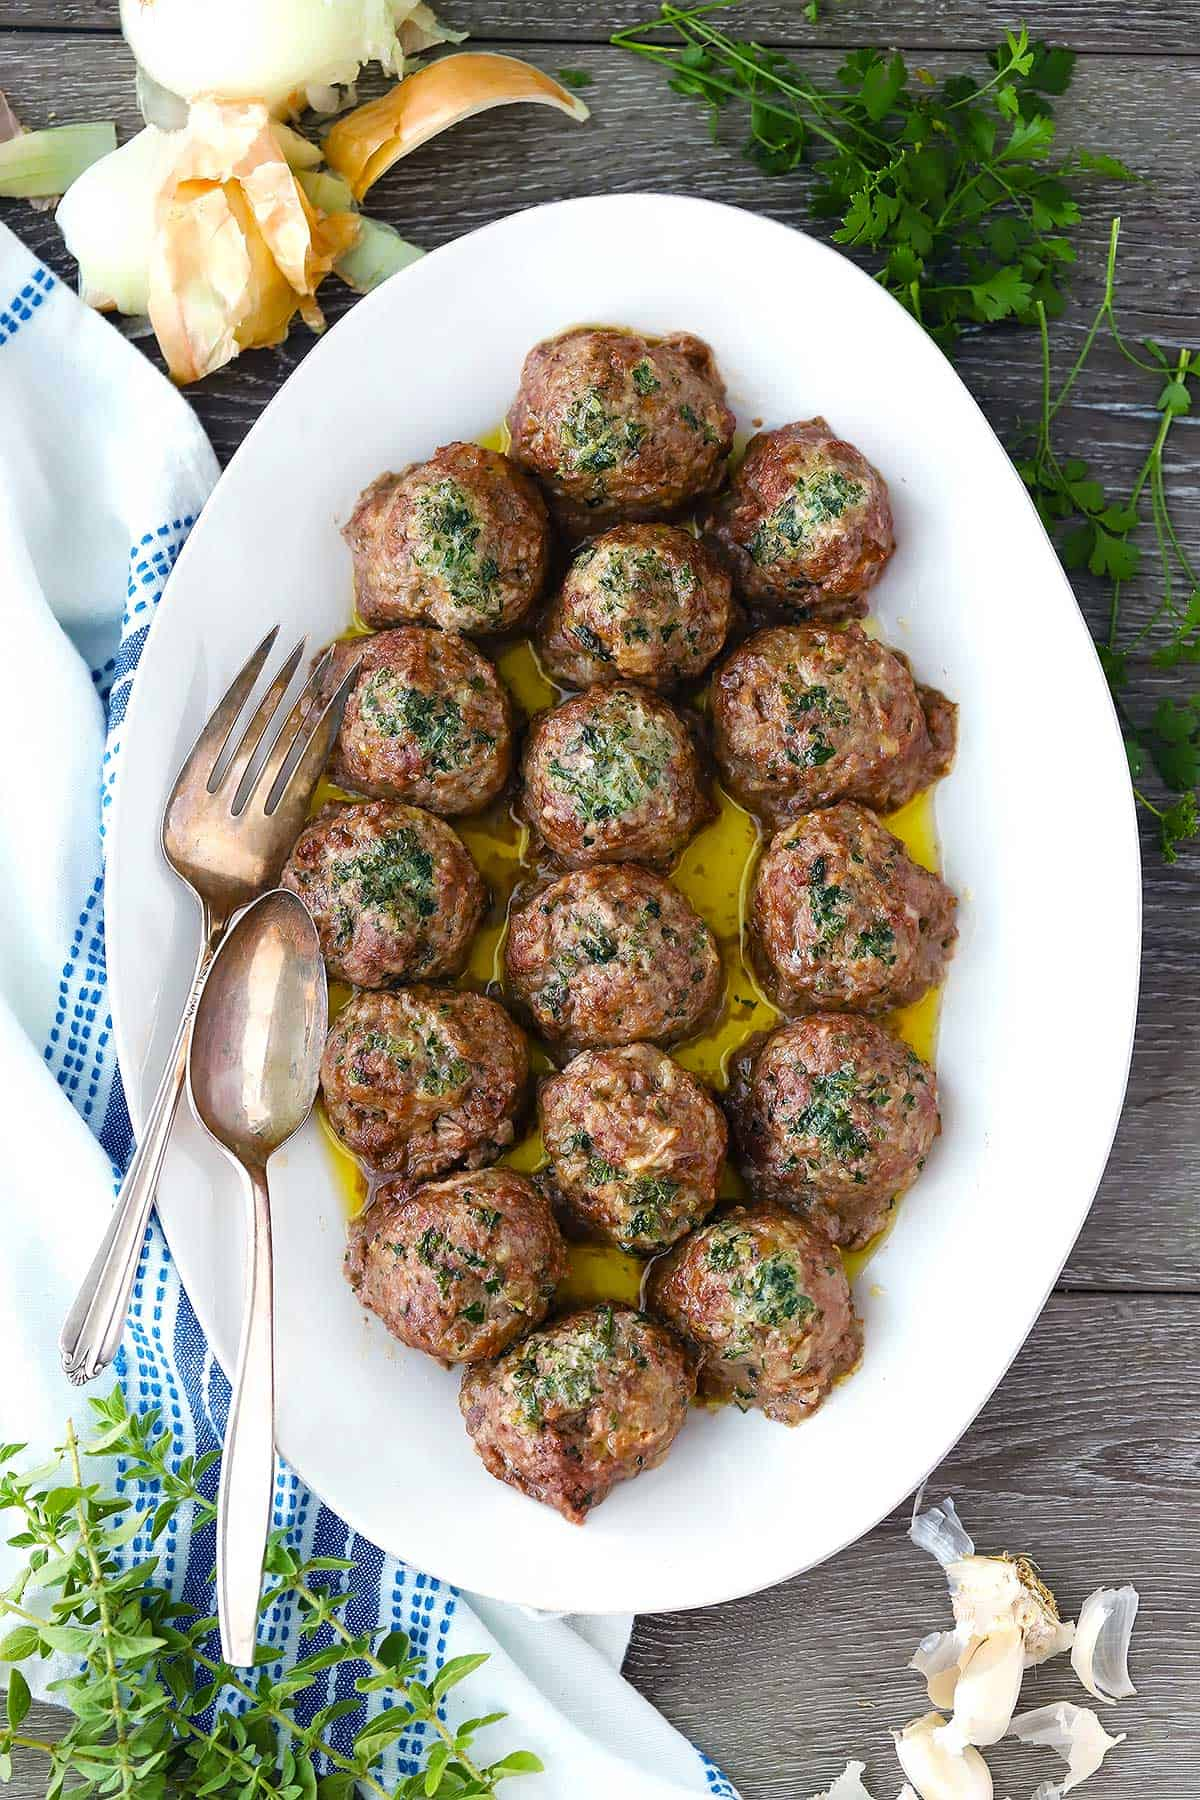 An overhead photo of a platter of keftedes (Greek Meatballs) with a serving fork and spoon.